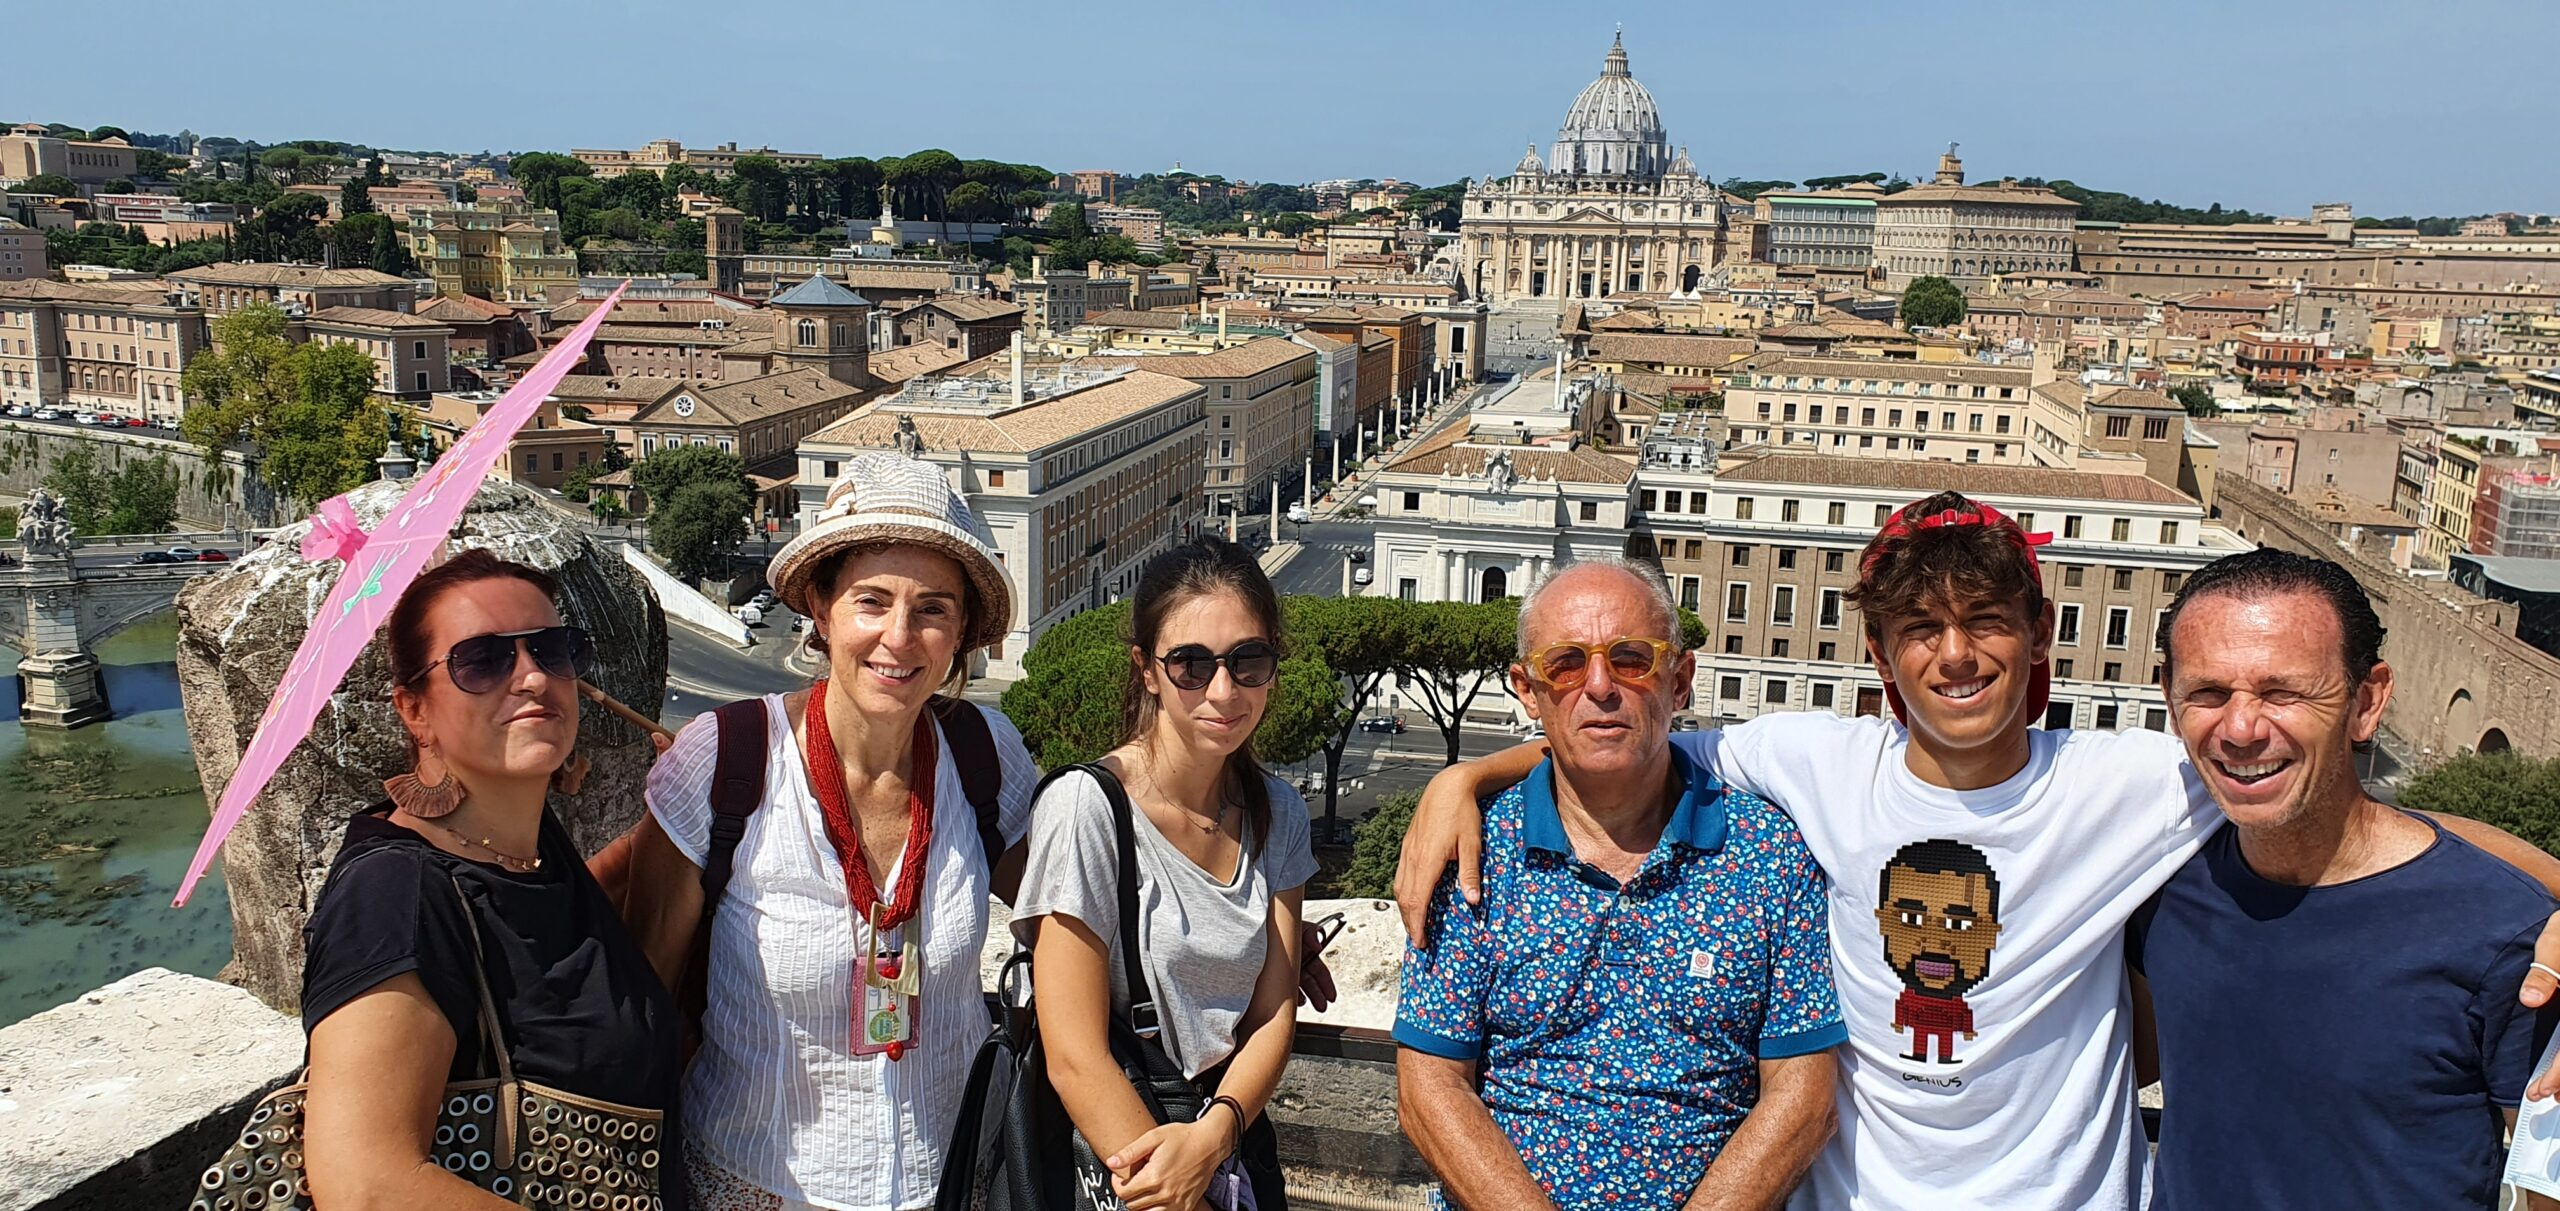 Castel Sant'Angelo, with the Prati family